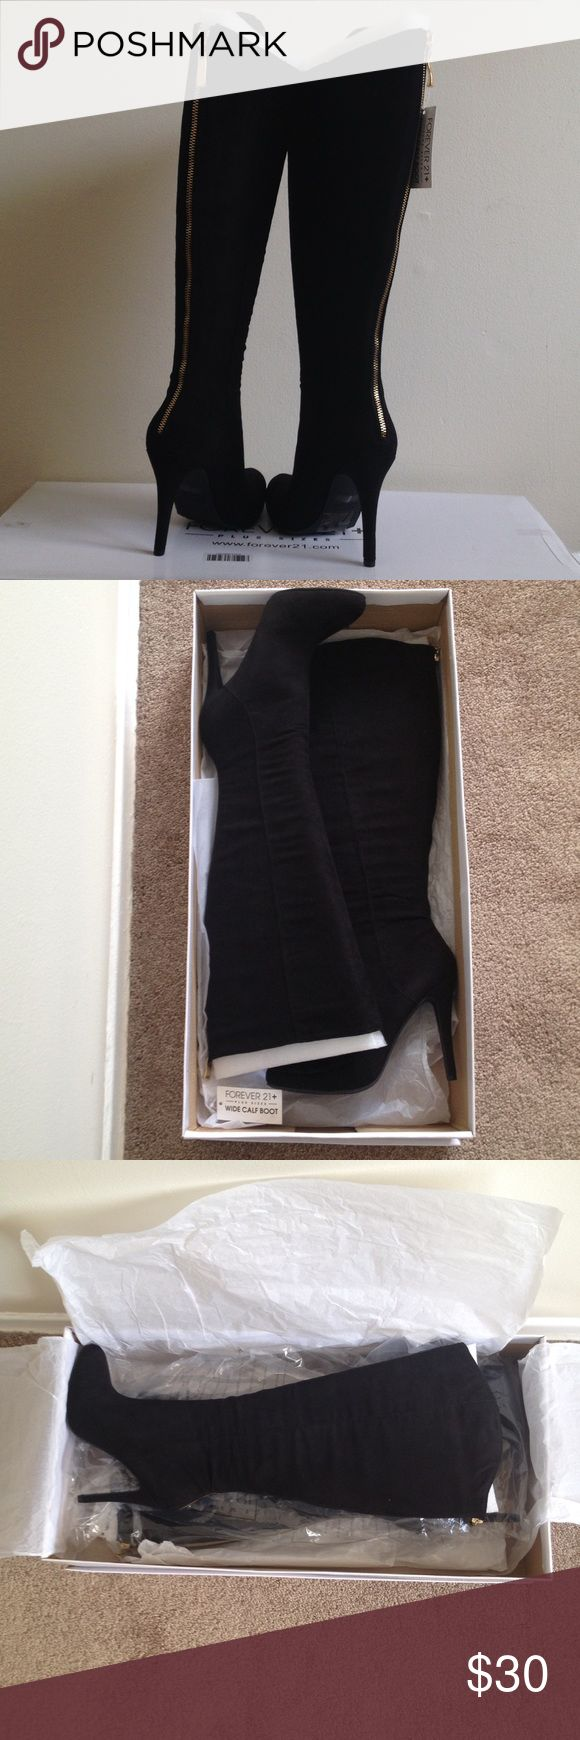 """Forever 21 Black Suede Spike Heel Boots Forever 21 Black Suede Spike Heel Boots. 4.5"""" heels. Compliments of my sister. She ordered them and ran out of time to return them. Brand new and never worn. NWT Forever 21 Shoes Heeled Boots"""